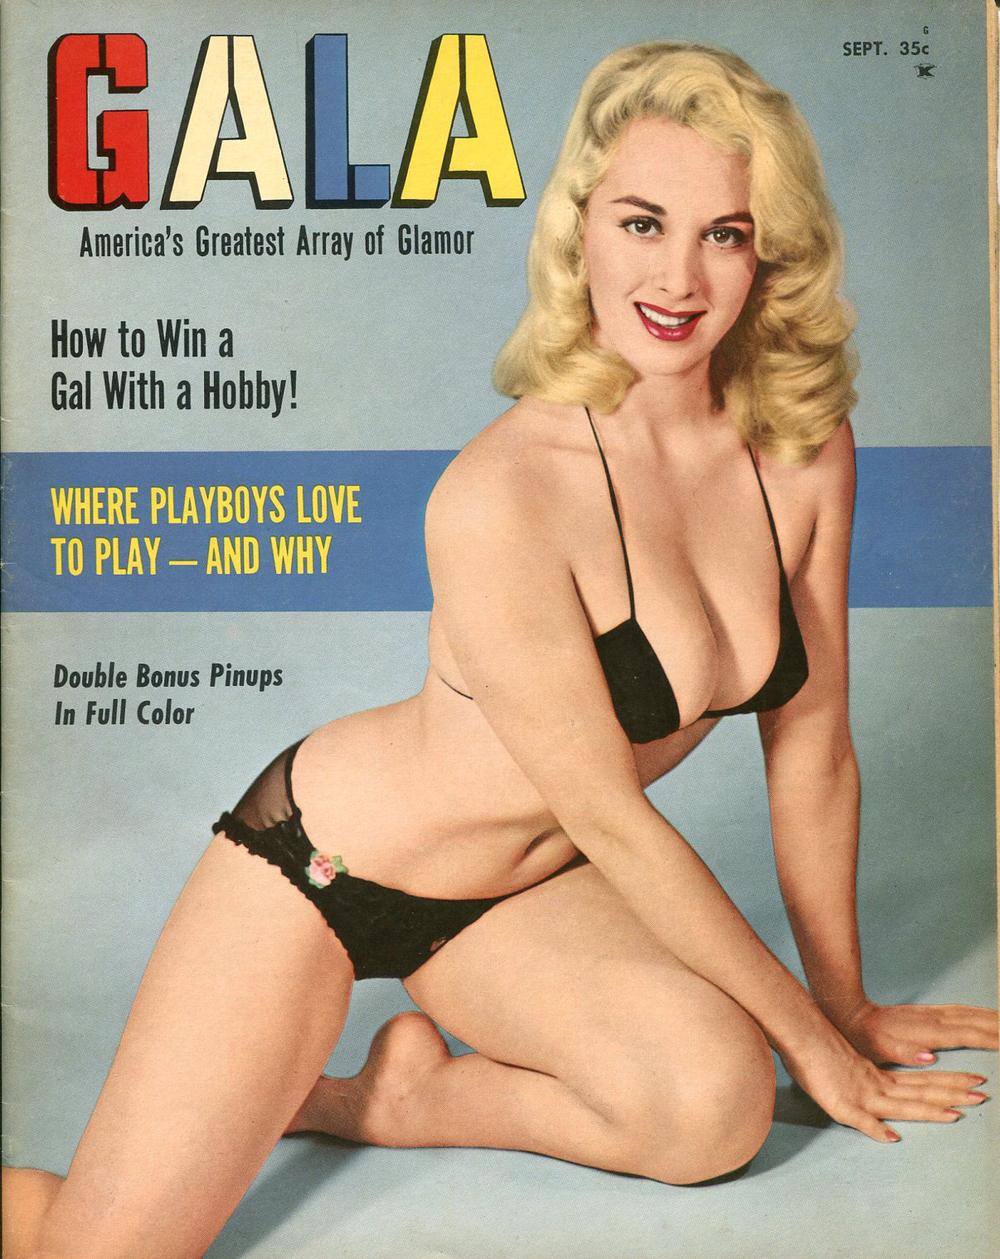 photographer uncredited, cover design,  Gala  magazine, September 1958